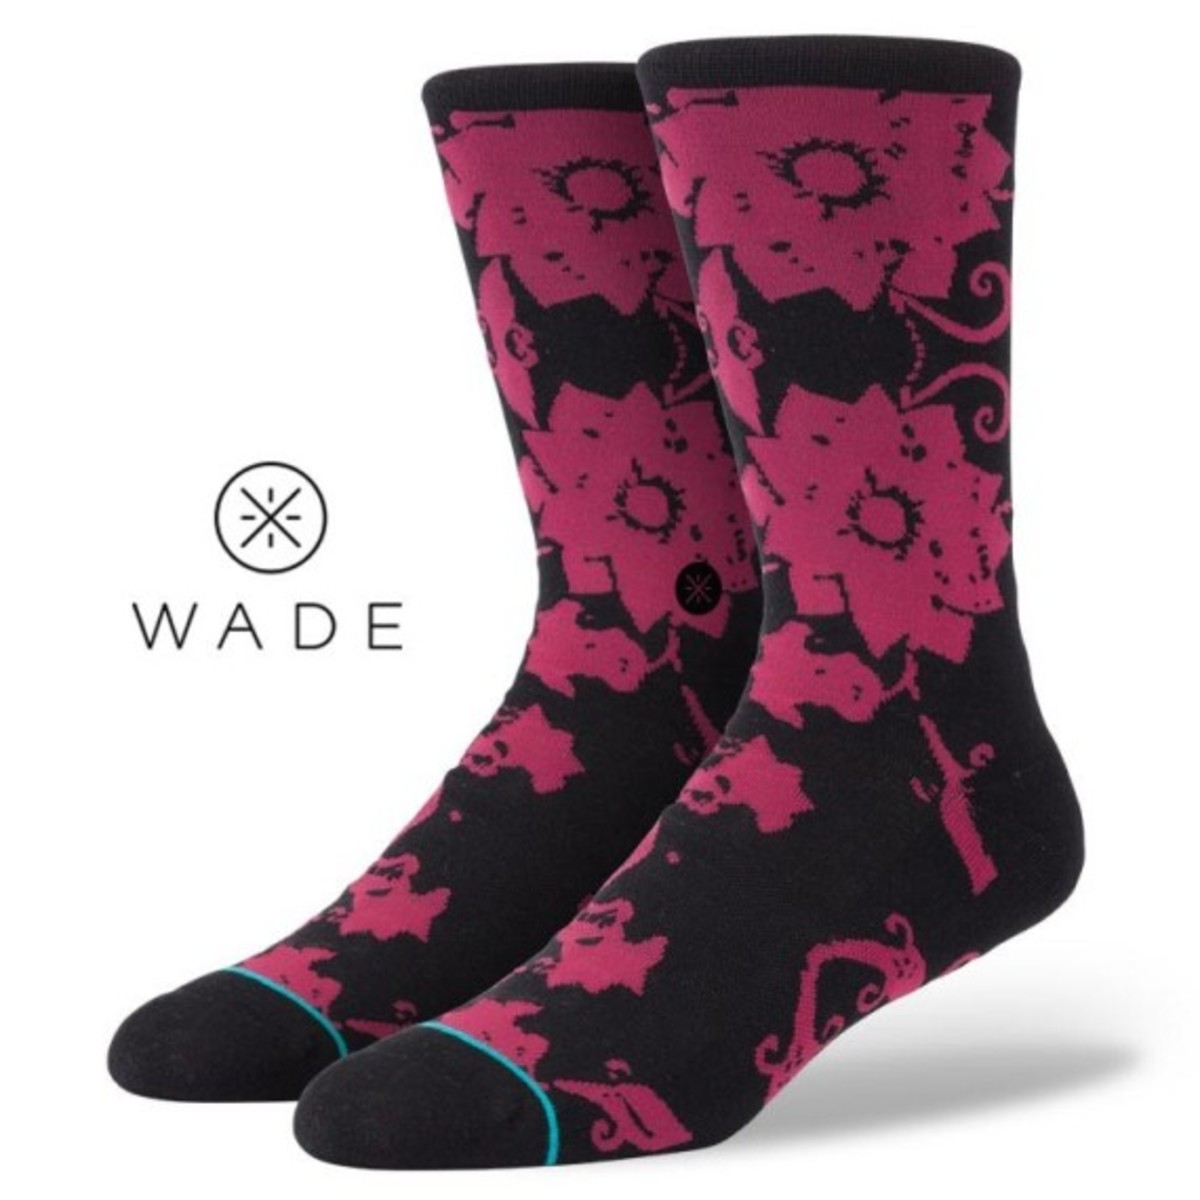 Dwyane Wade x Stance Socks – Summer 2014 Collection - 7